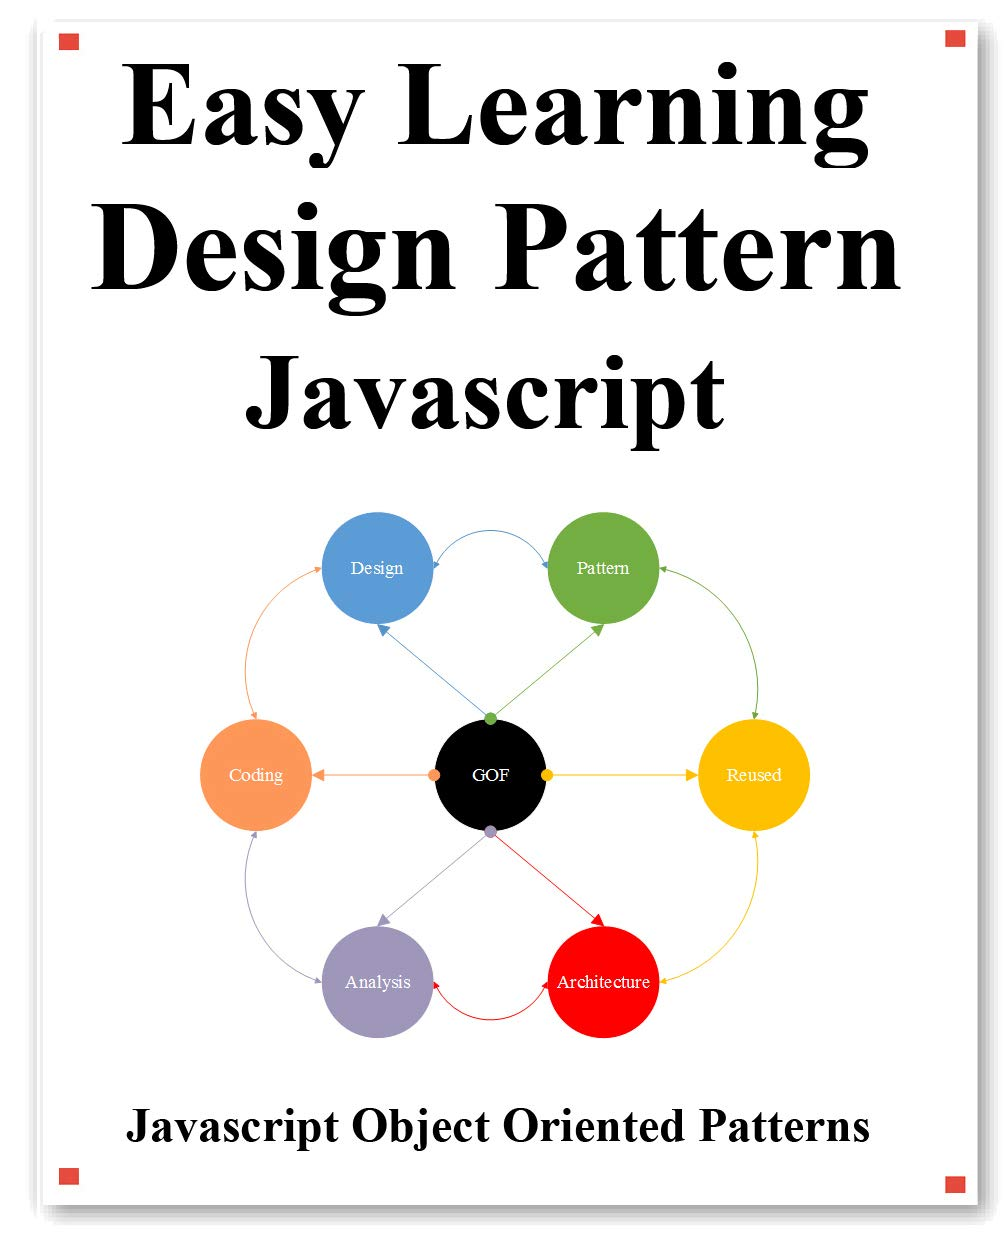 Easy Learning Design Patterns Javascript: Build Better Coding and Design Patterns